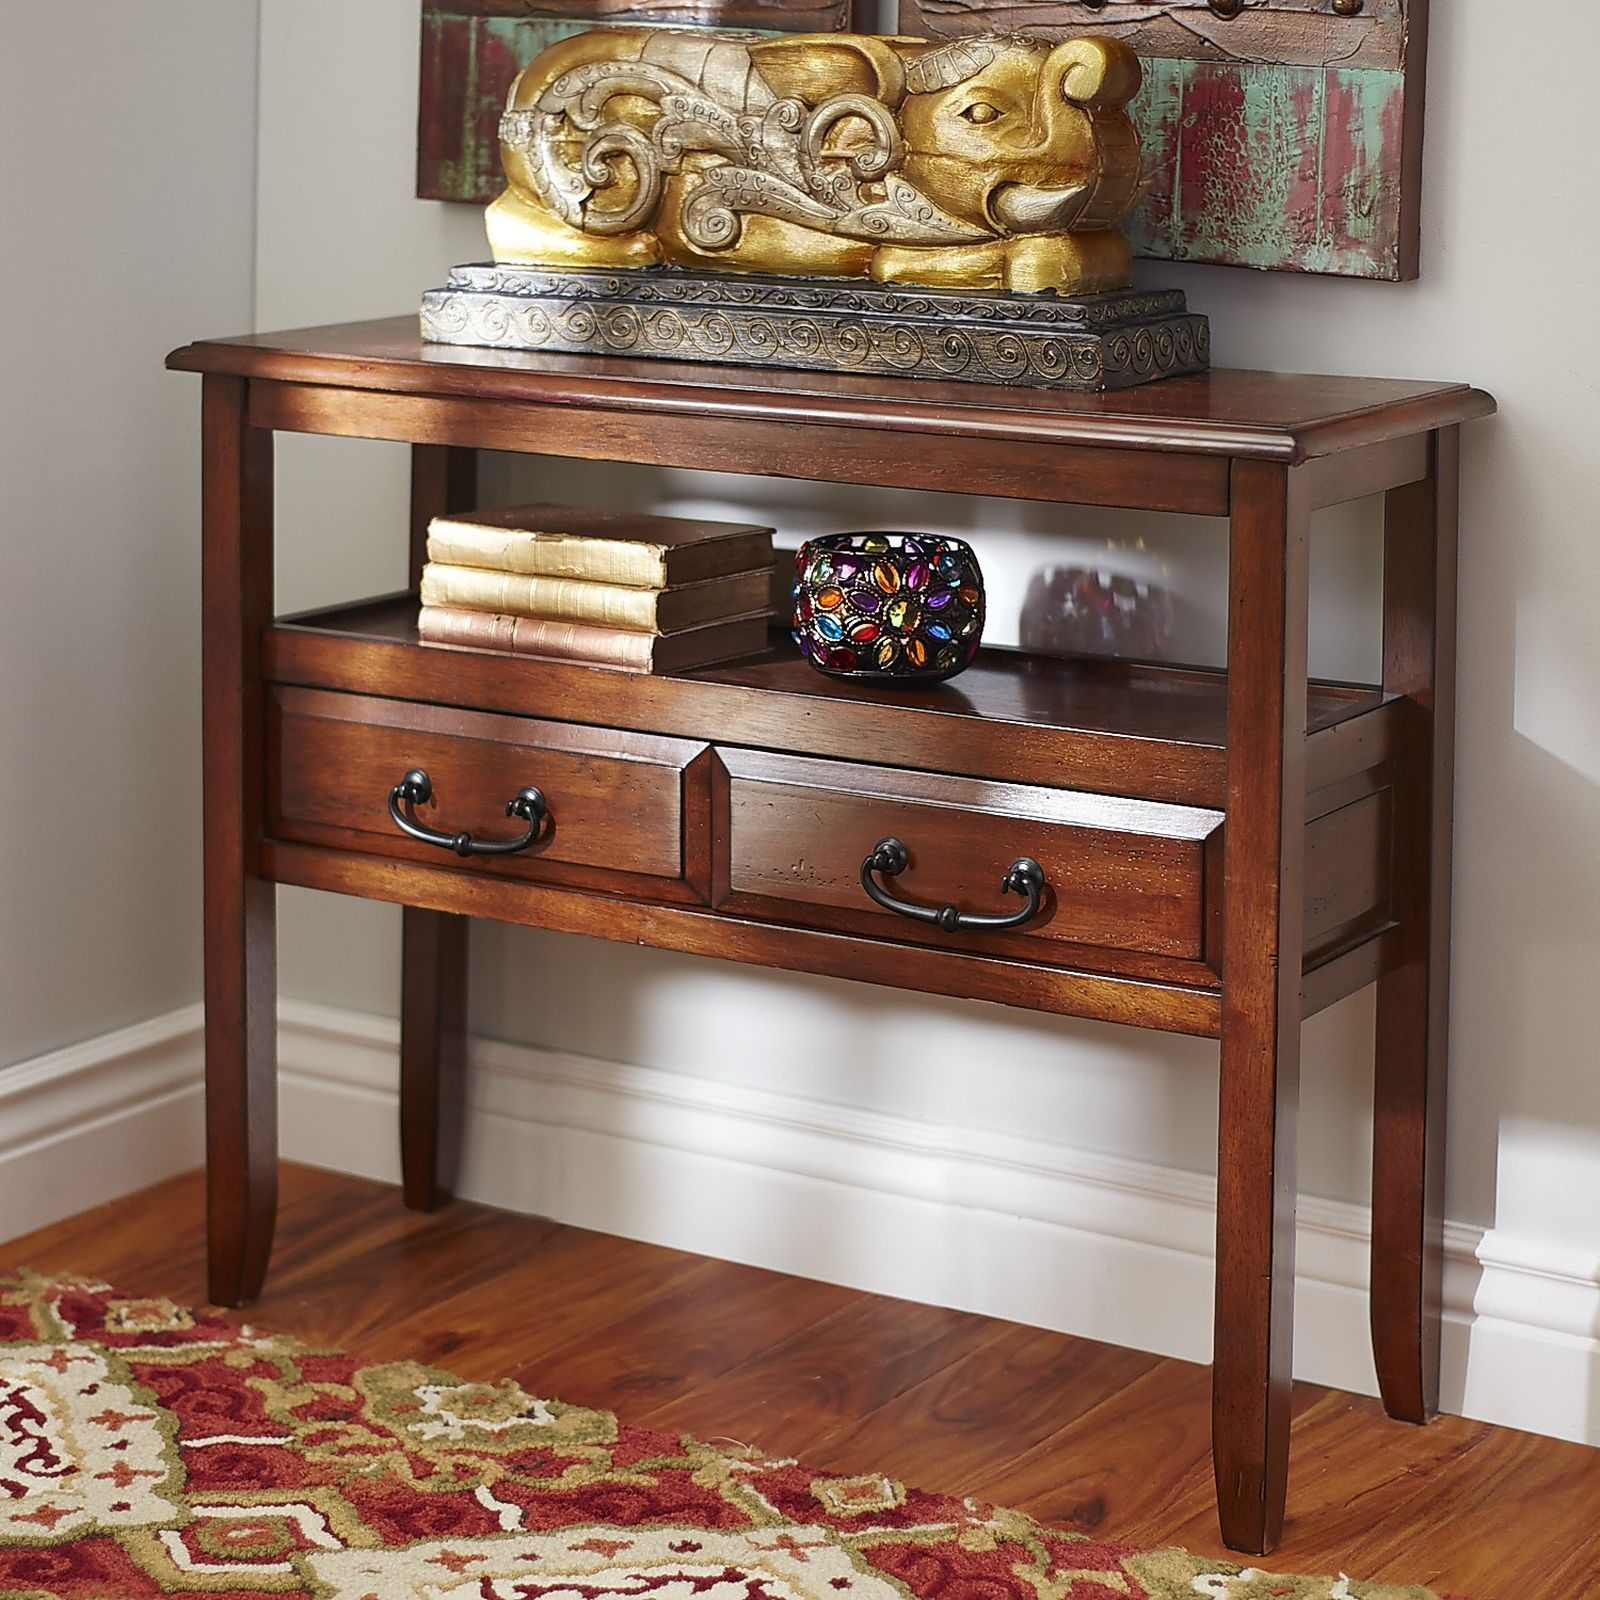 Anywhere Tuscan Brown Console Table with Pull Handles   Ogee edge ...